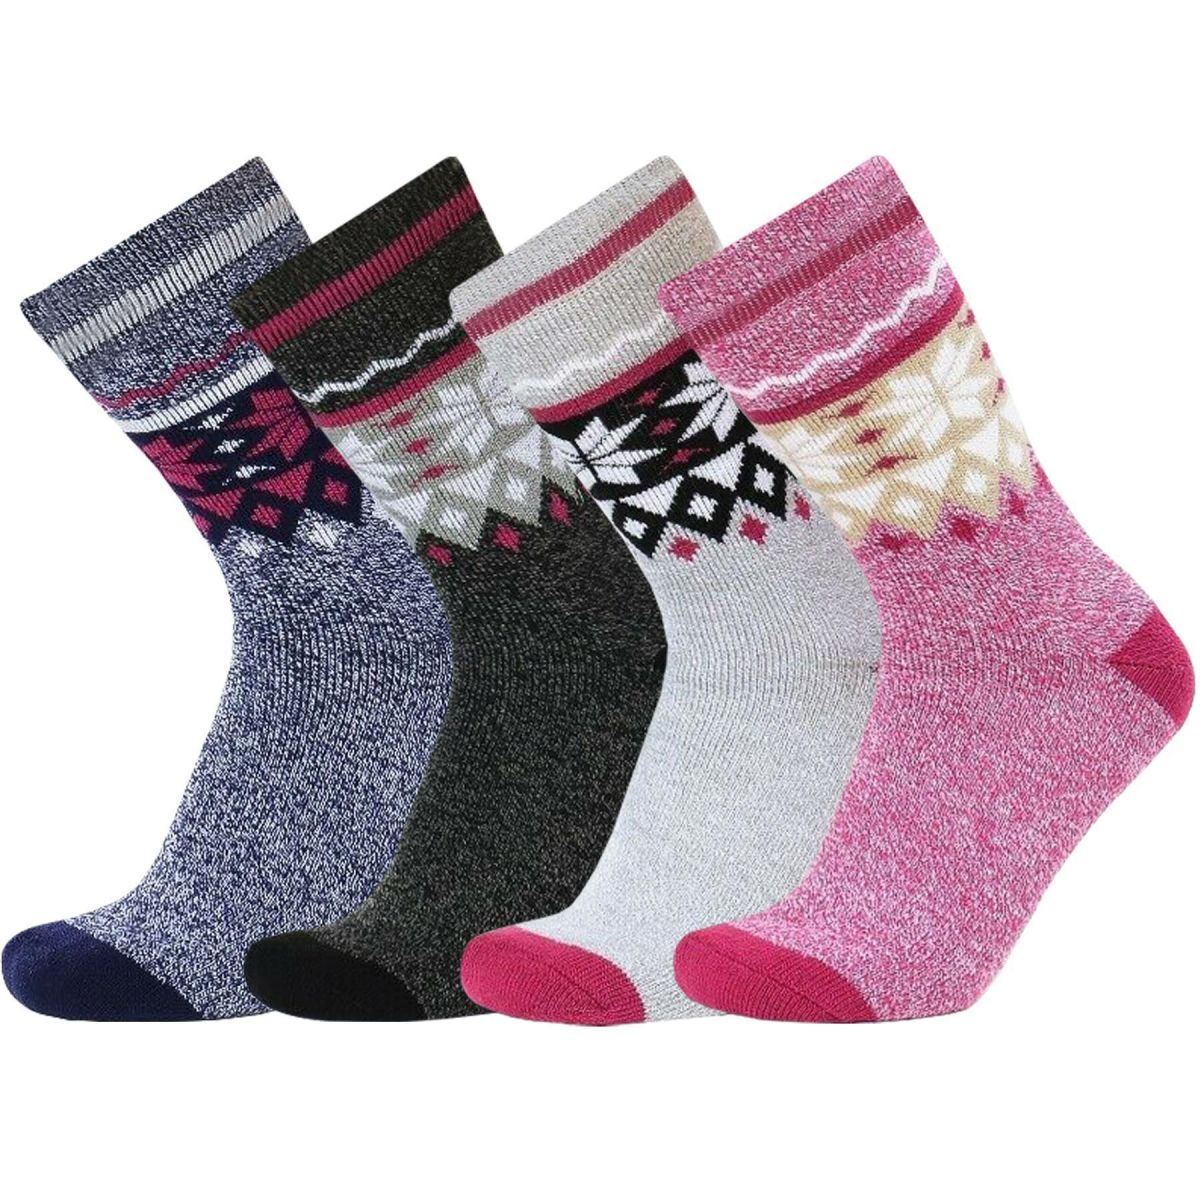 Accessories | Ladies Thermal Winter 1.6 Tog Socks UK 4 -7, From £5.99, Guest Brand, in  | Raw Denim Outlet